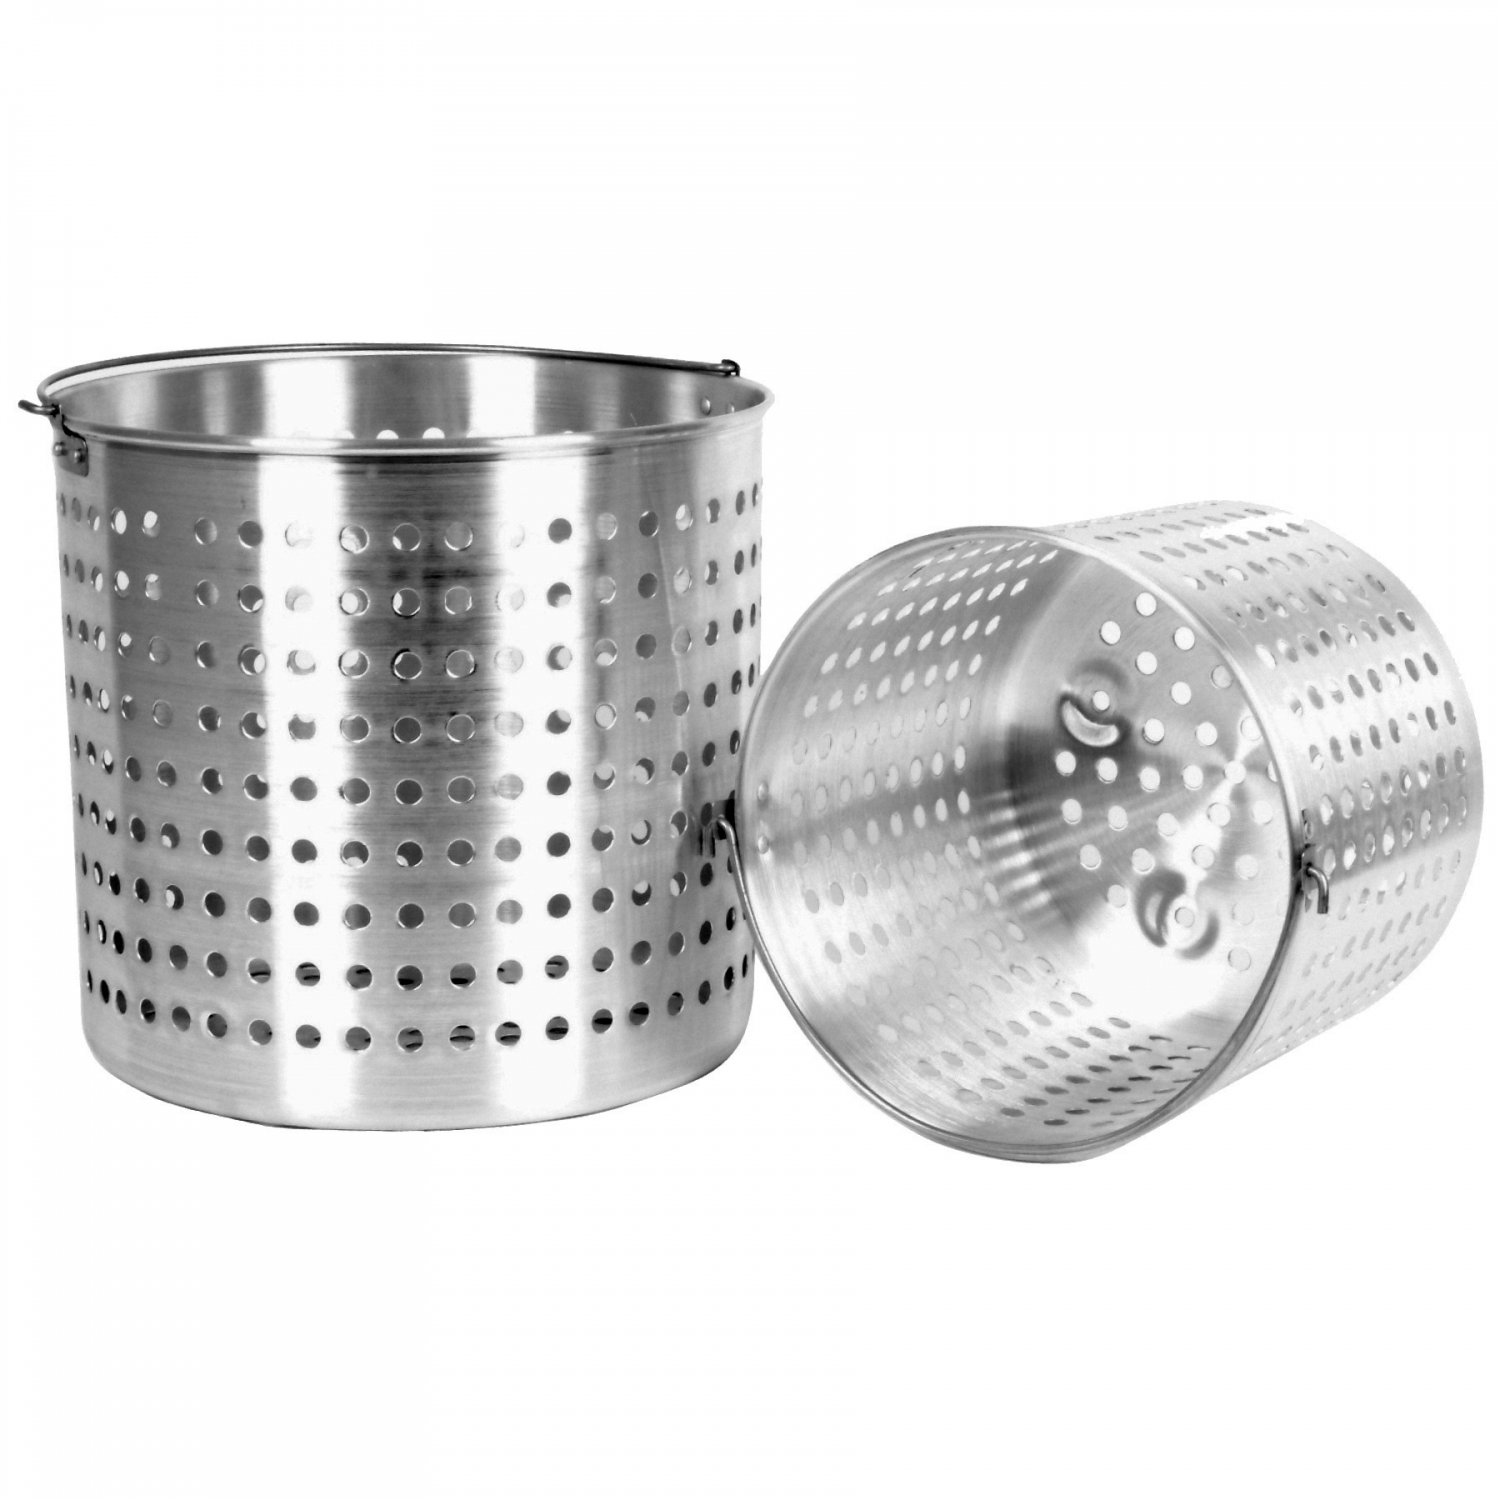 Thunder Group ALSKBK003 Aluminum Steamer Basket 20 Qt.